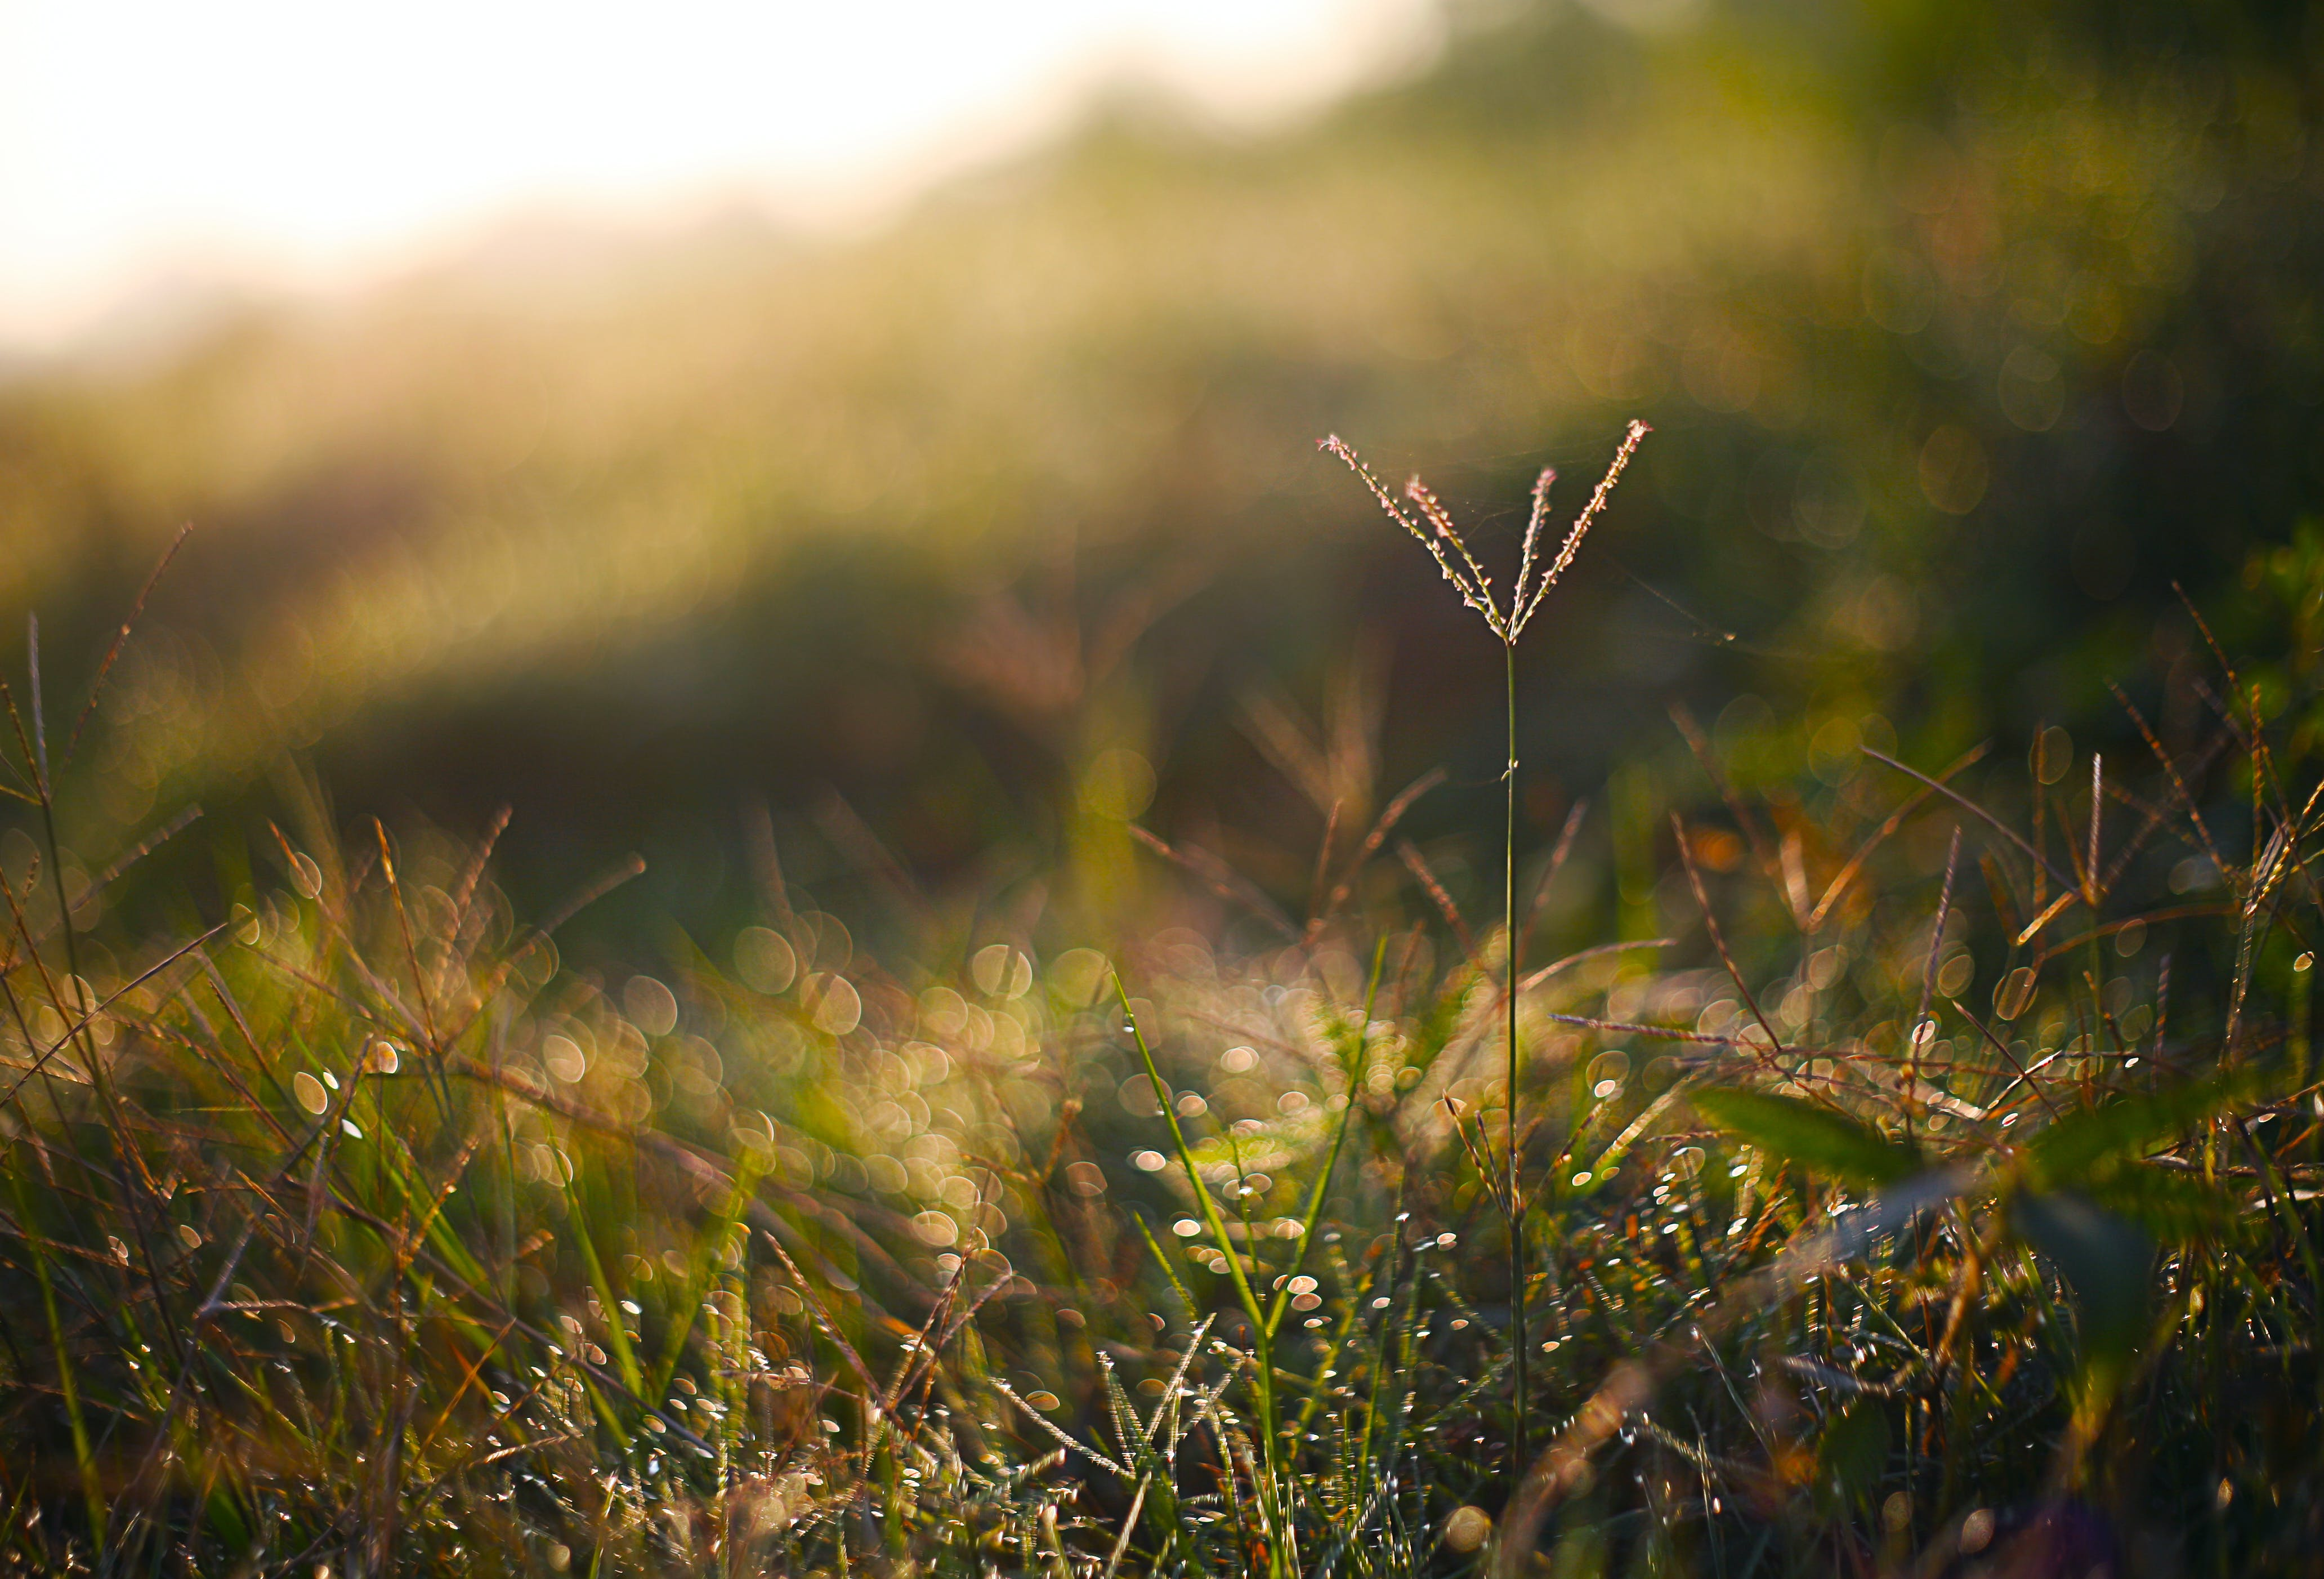 Tilt-shift Photography Of Grass